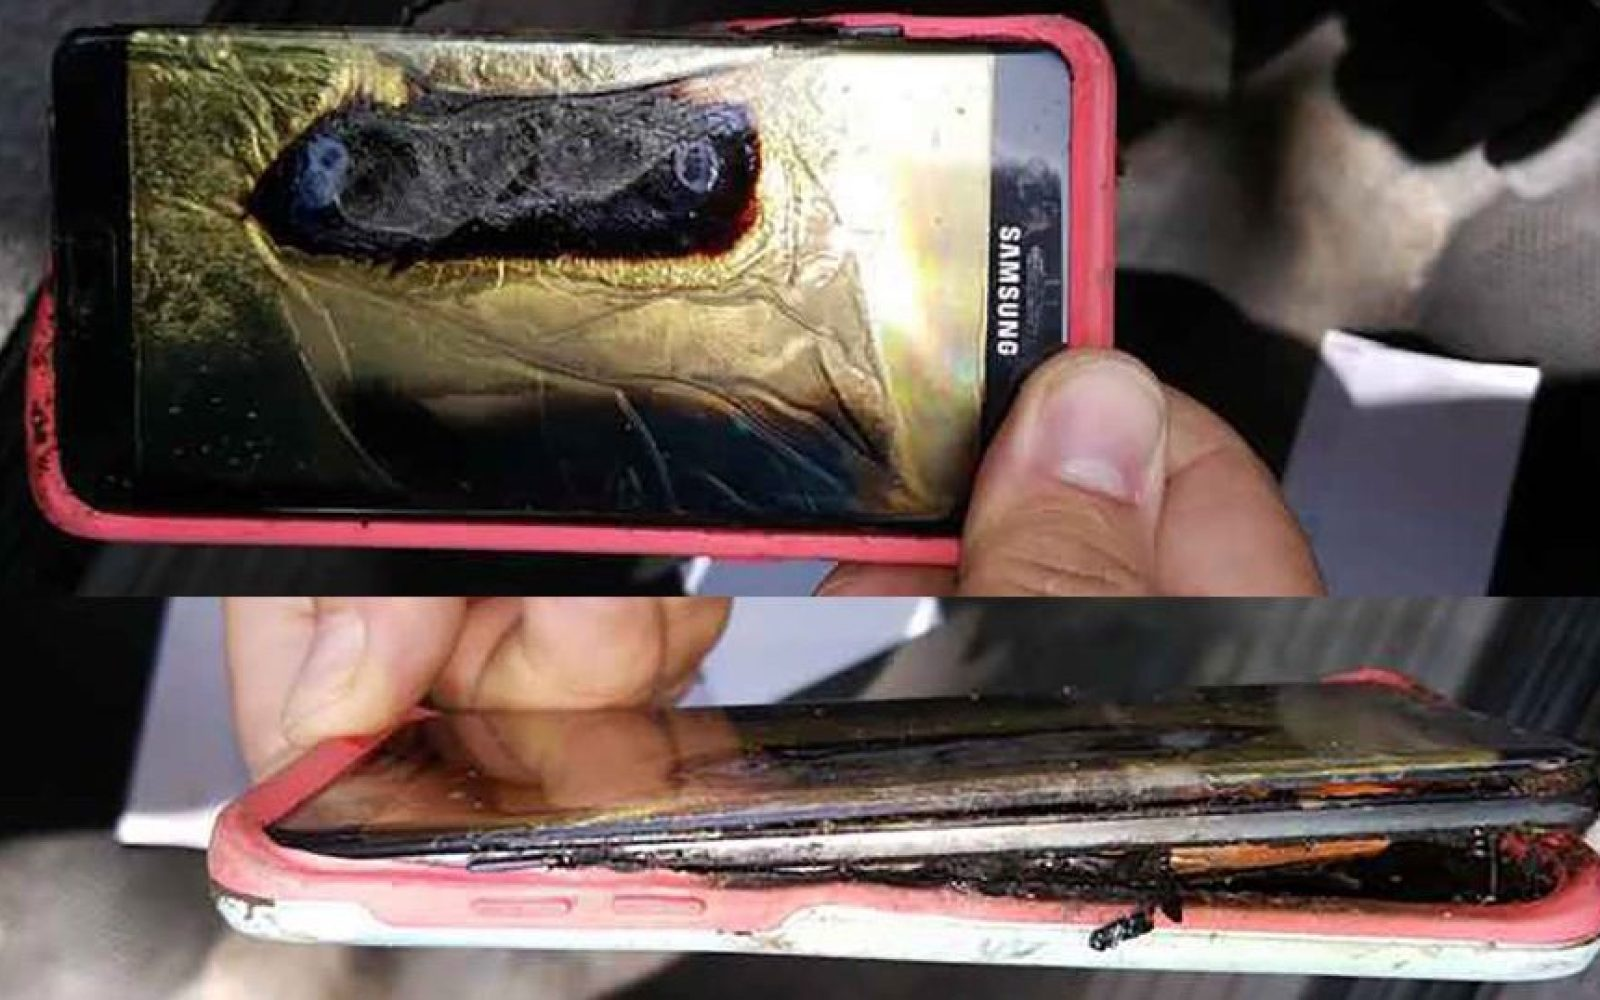 Another replacement Galaxy Note 7 apparently caught fire in Minnesota